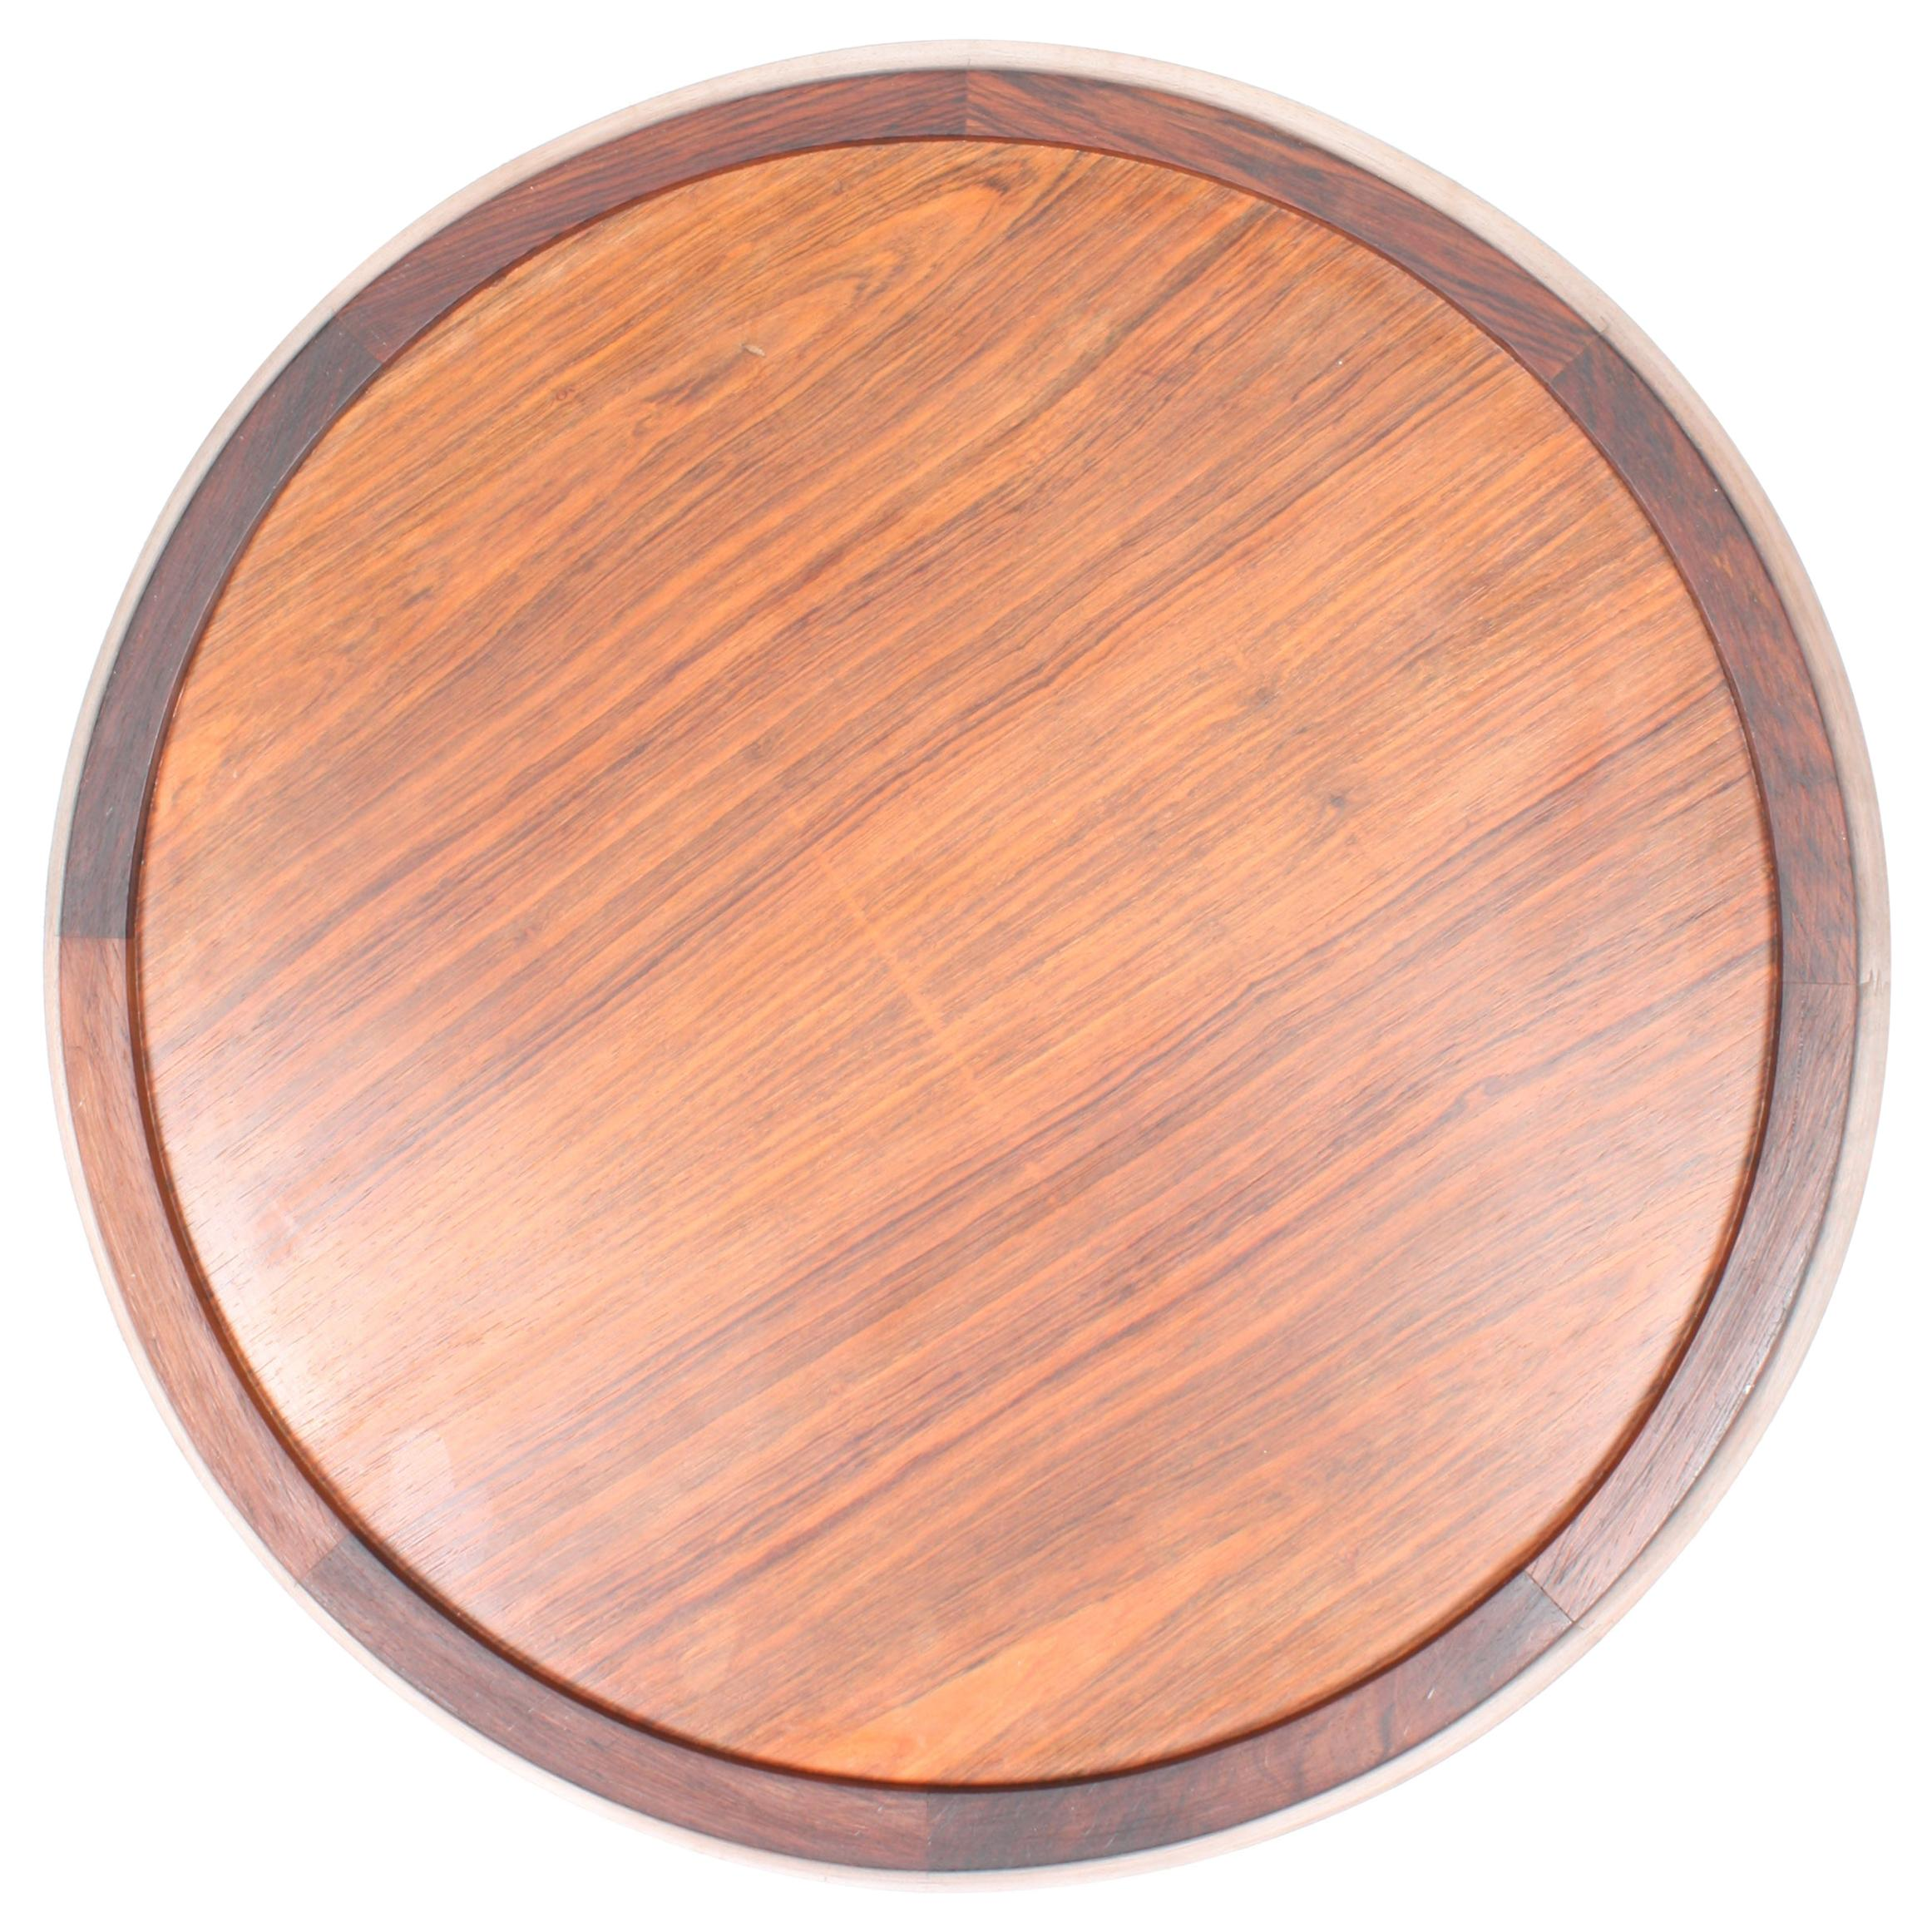 Midcentury Serving Tray in Rosewood, Danish Modern, 1950s